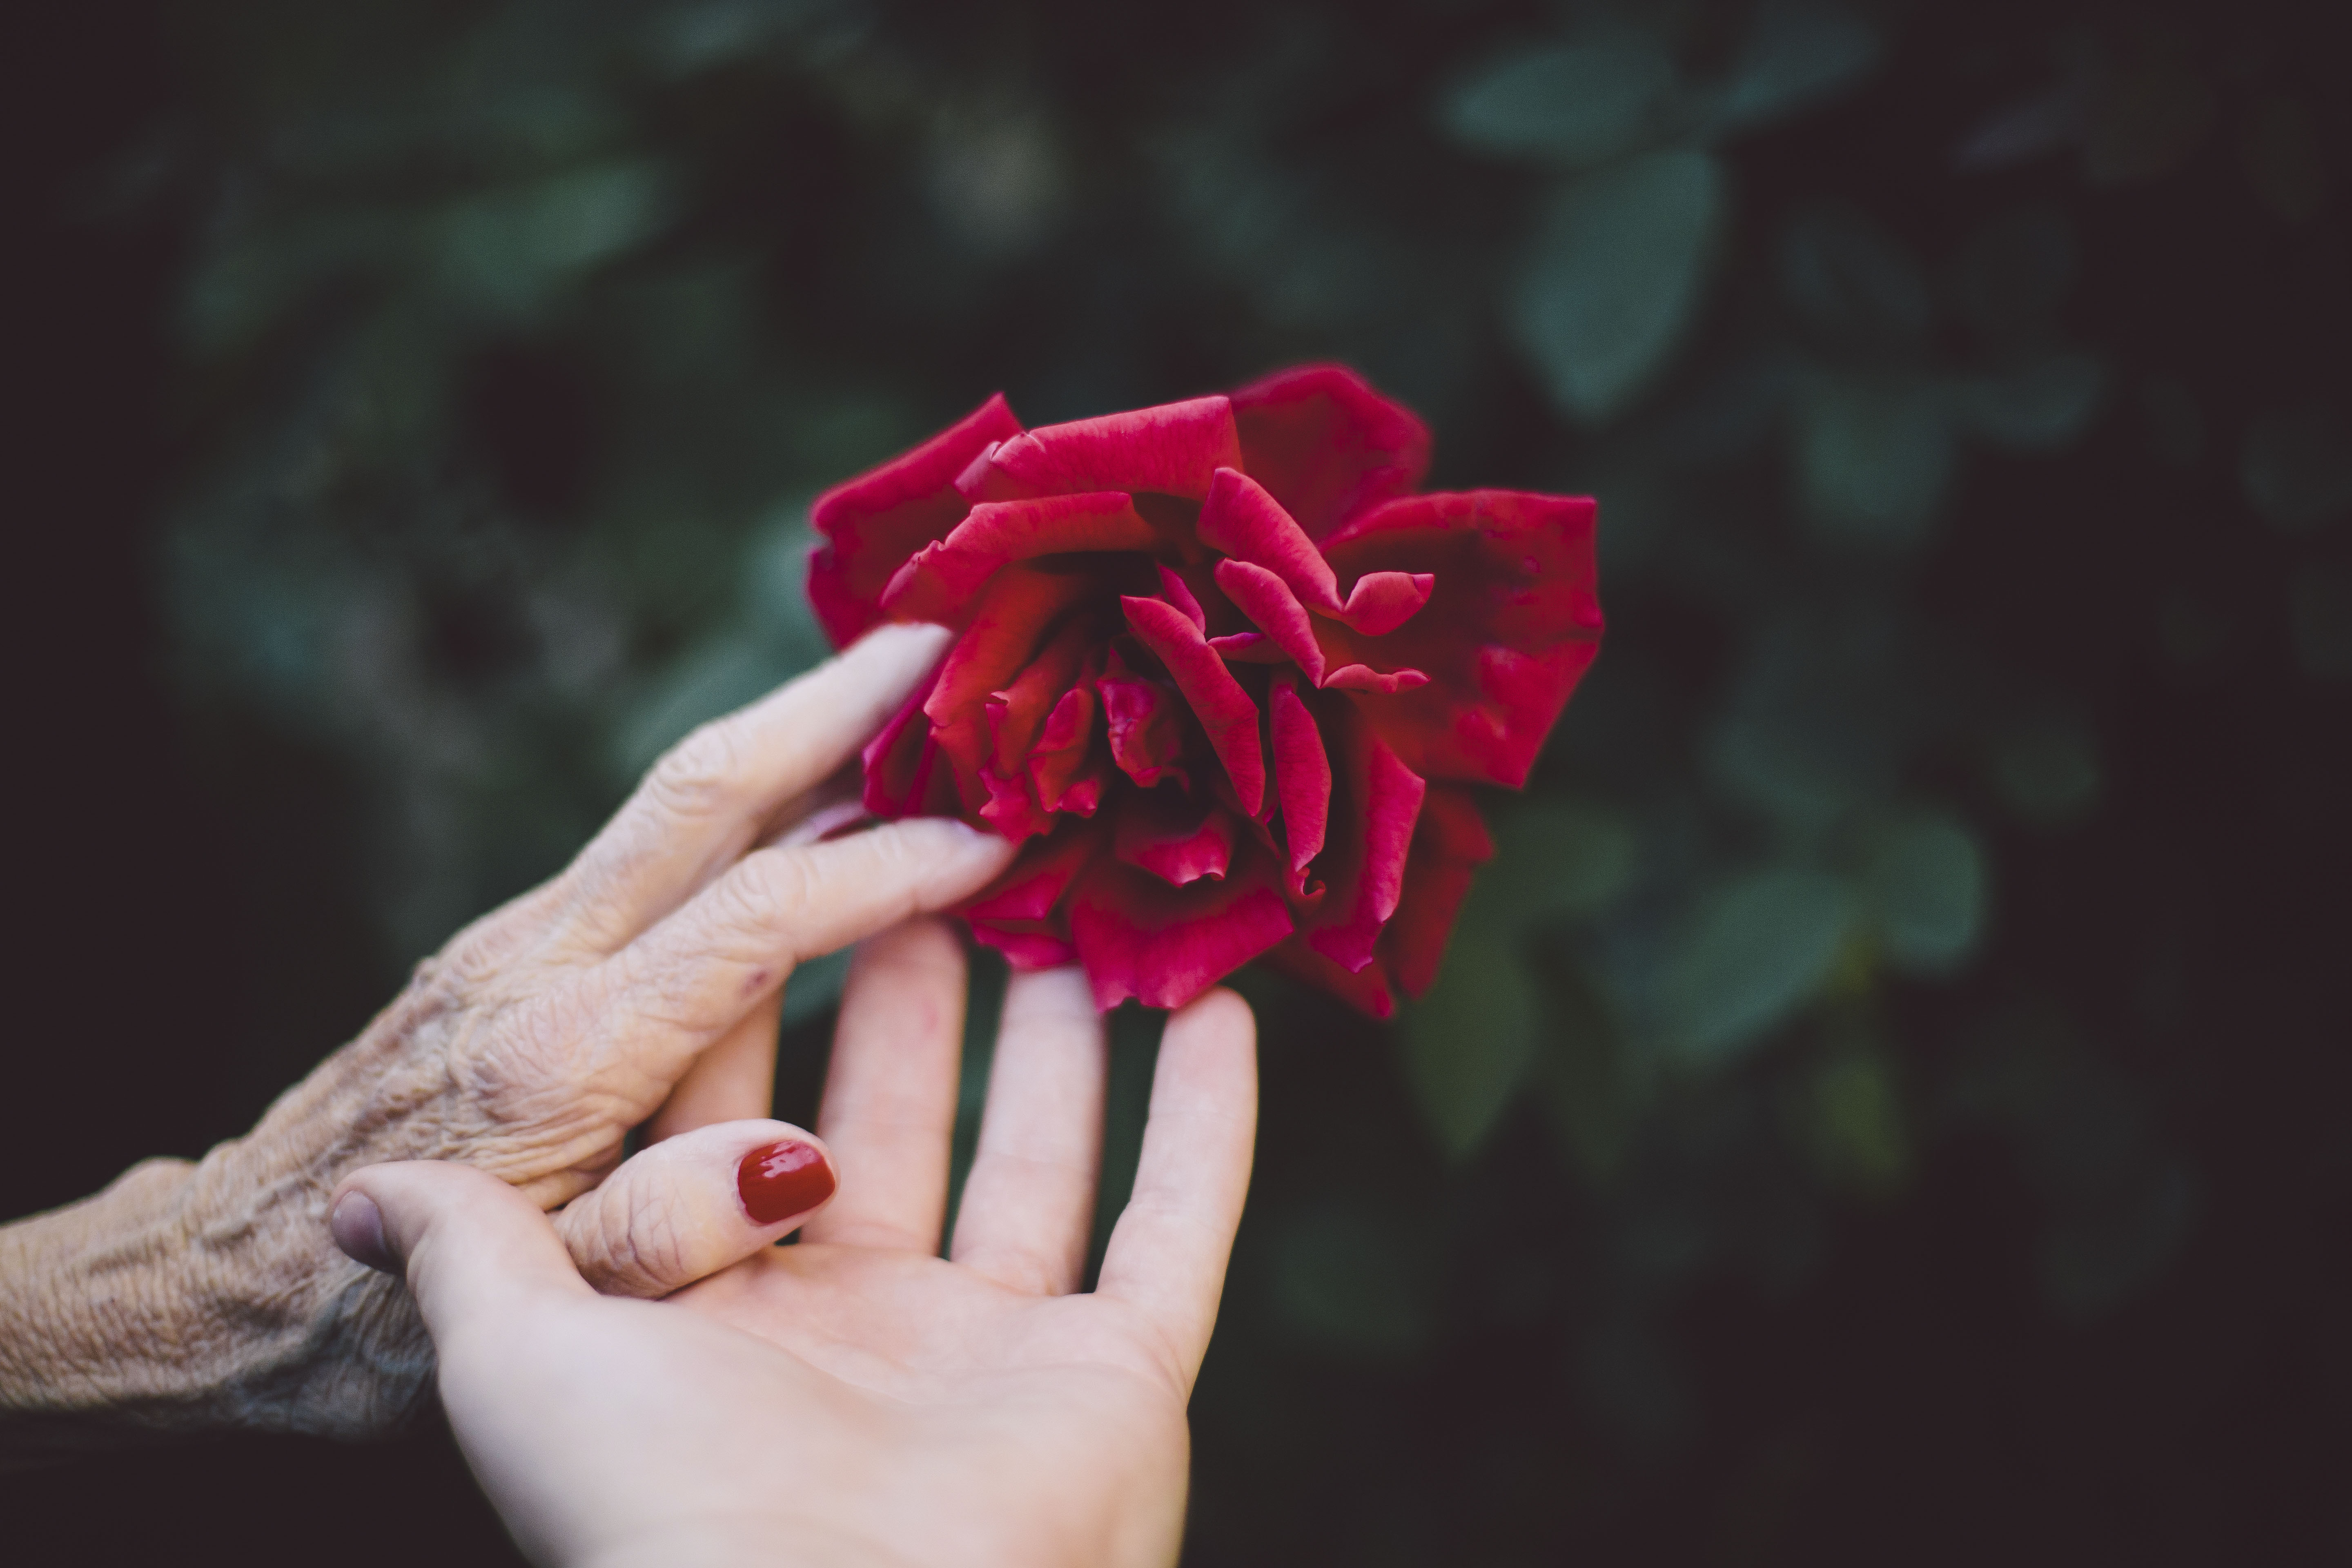 grief counseling, nina impala, tutoring for the spirit, tutoringforthespirit.com, grief counselor, intuitive guidance, intuitive sessions, guidance through grief, guidance through loss, elderly parents, guidance through death, suicide, loss of a loved one, loss of a parent, aging parents, moving towards death, terminal illness, divorce